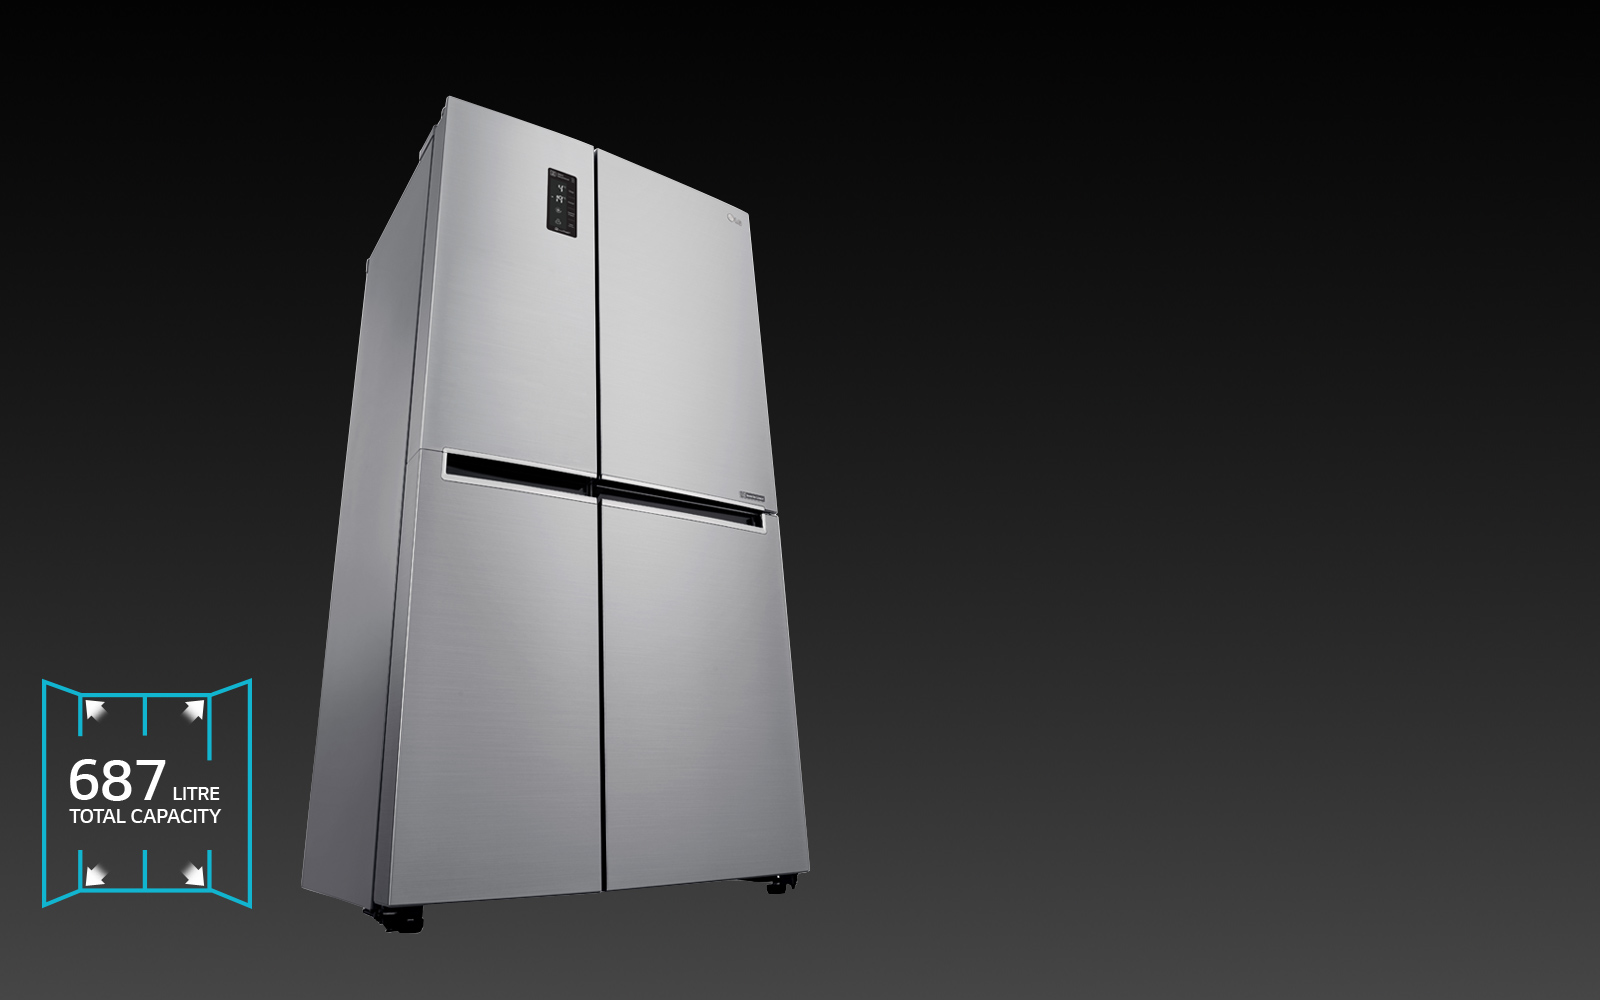 LG 687L Side by Side Refrigerator - GS-B680PL